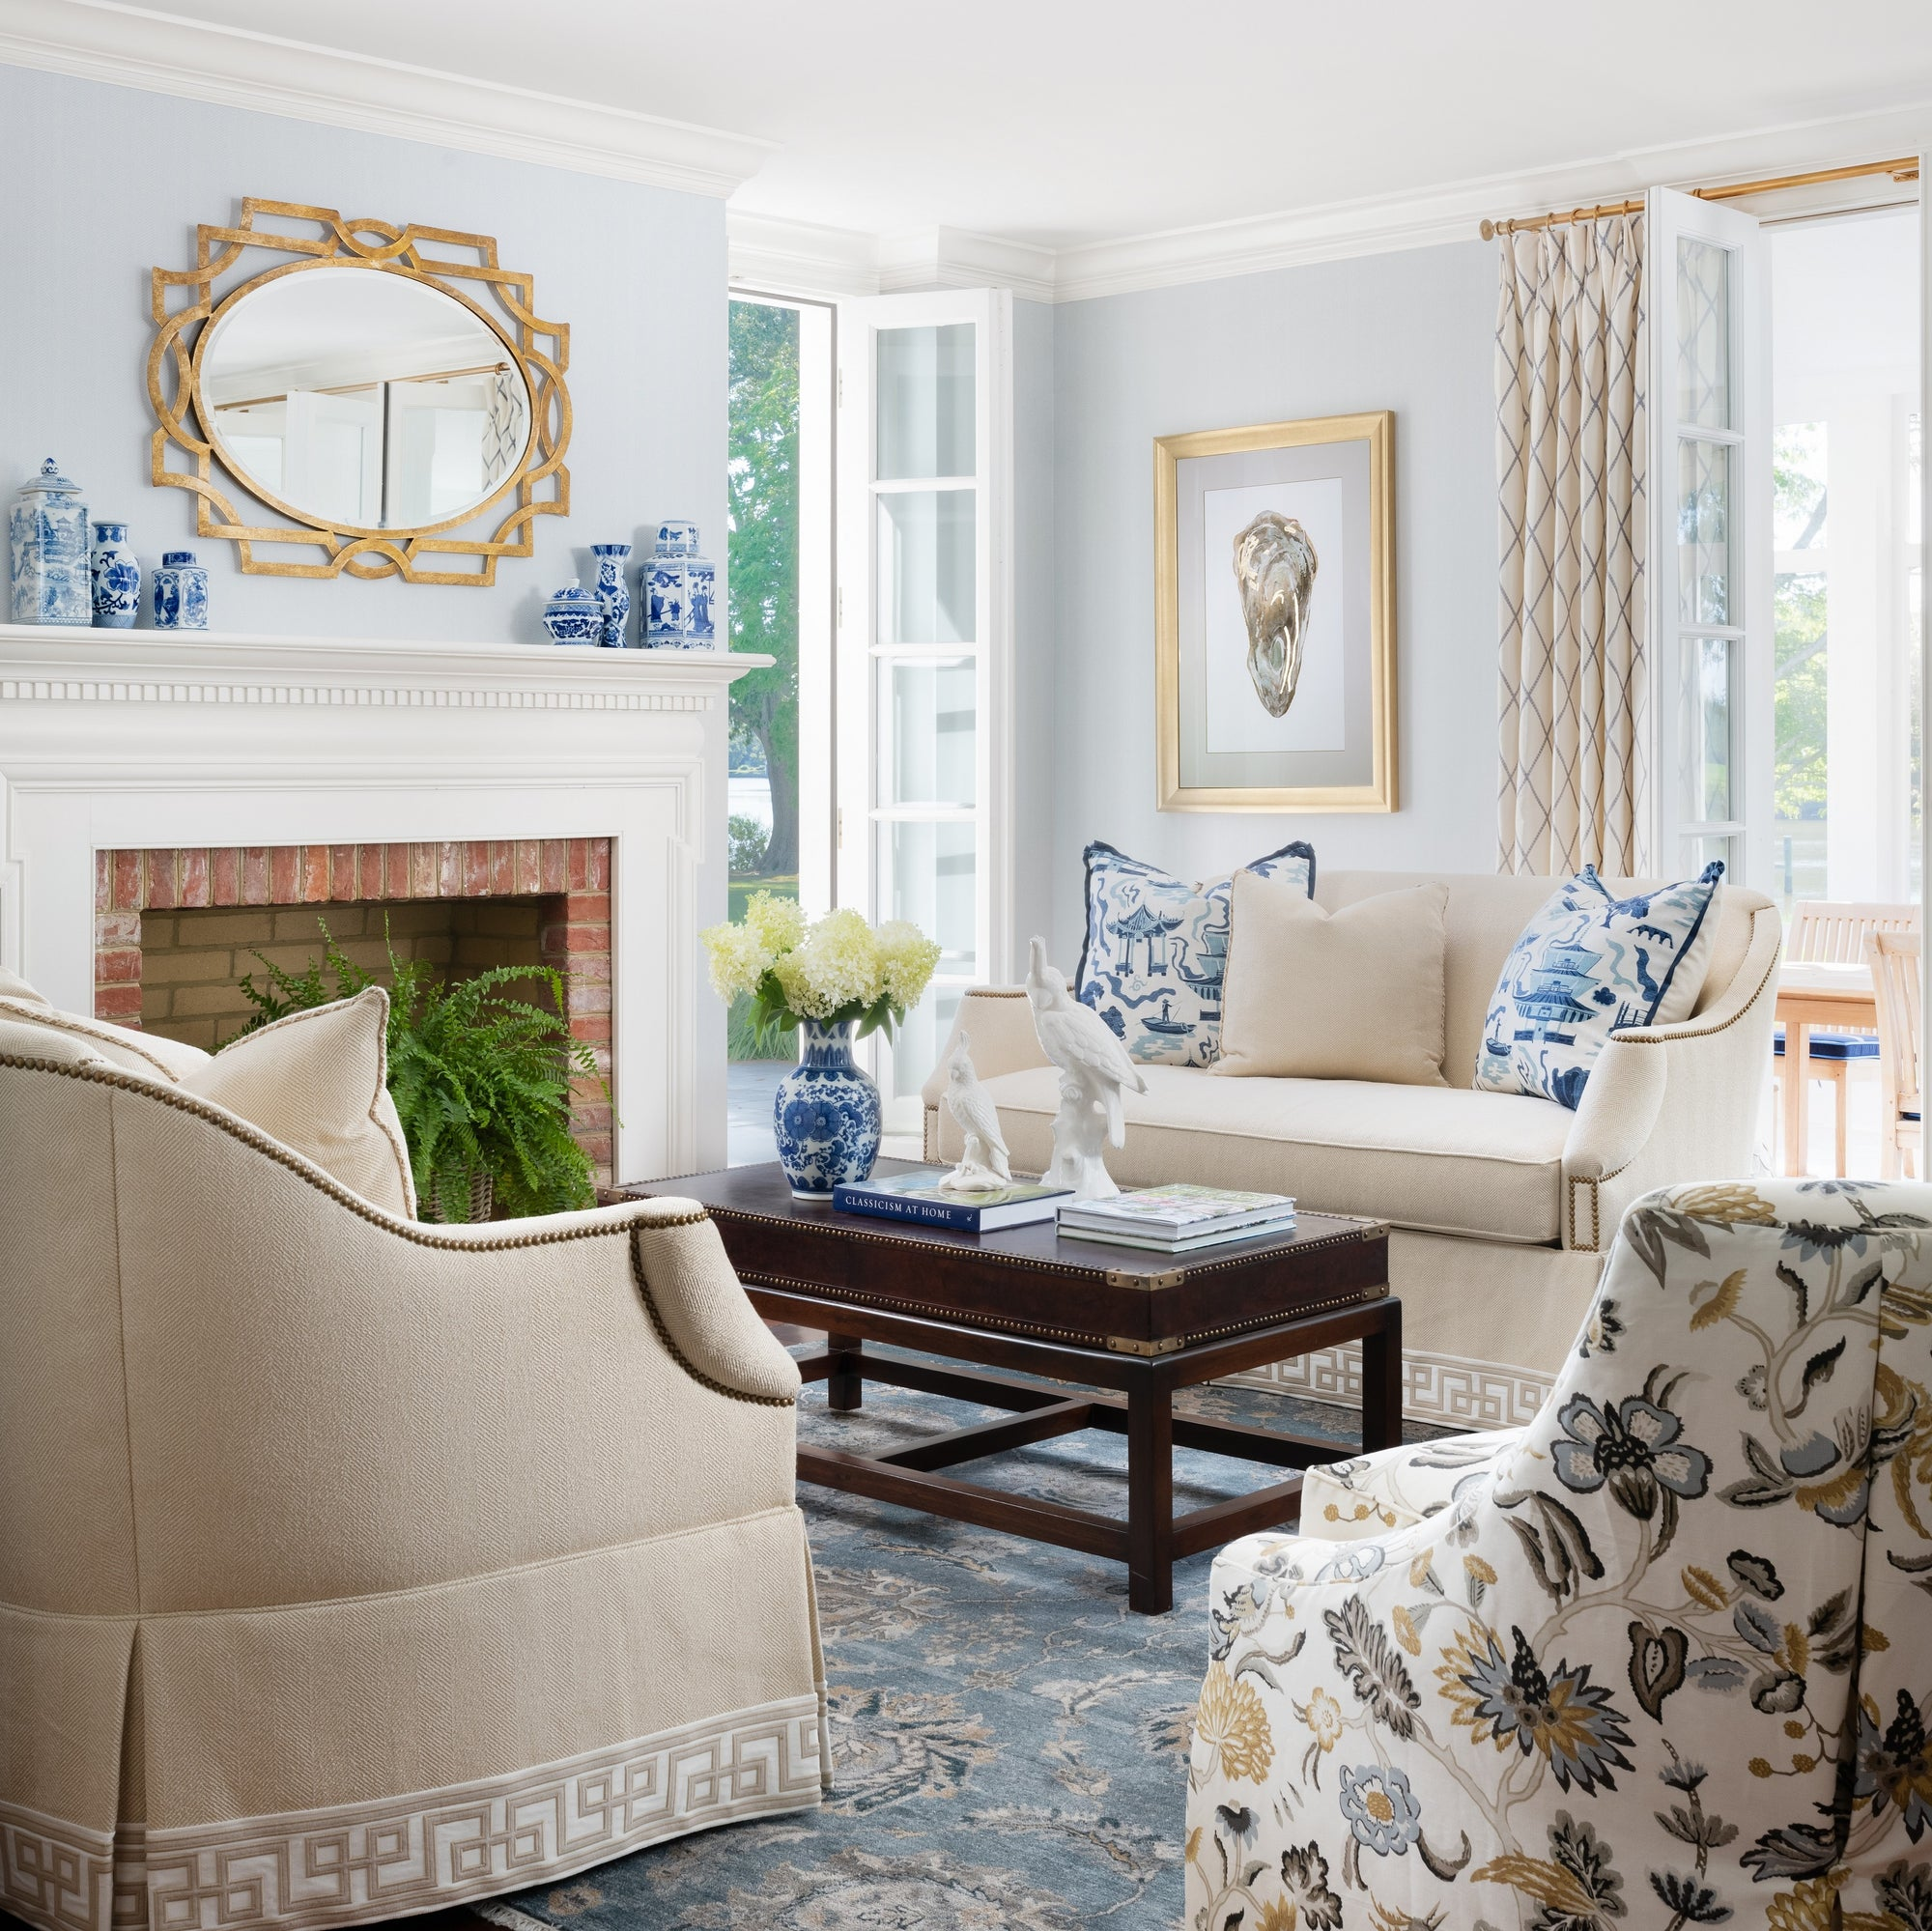 Traditional living room with blue walls and accents, neutral furniture, and natural light. Design by Jamie Merida Interiors.